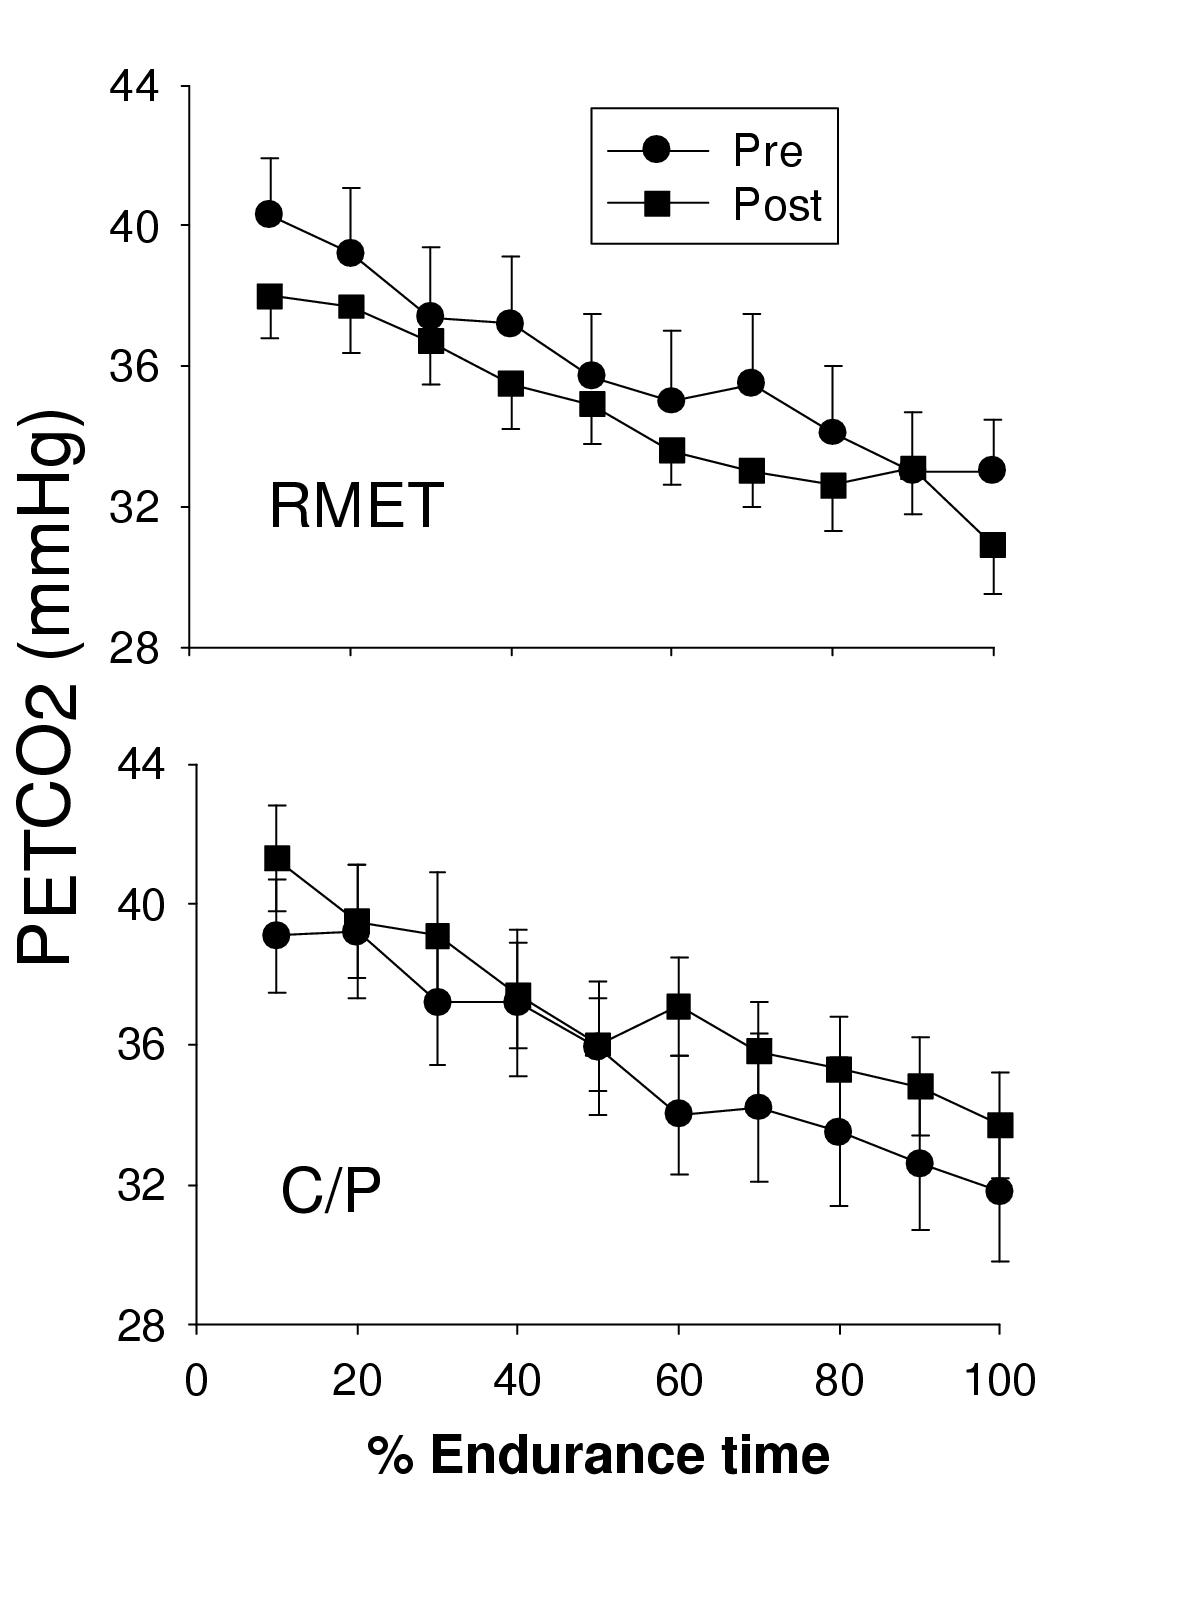 https://static-content.springer.com/image/art%3A10.1186%2F1472-6793-4-9/MediaObjects/12899_2003_Article_57_Fig5_HTML.jpg